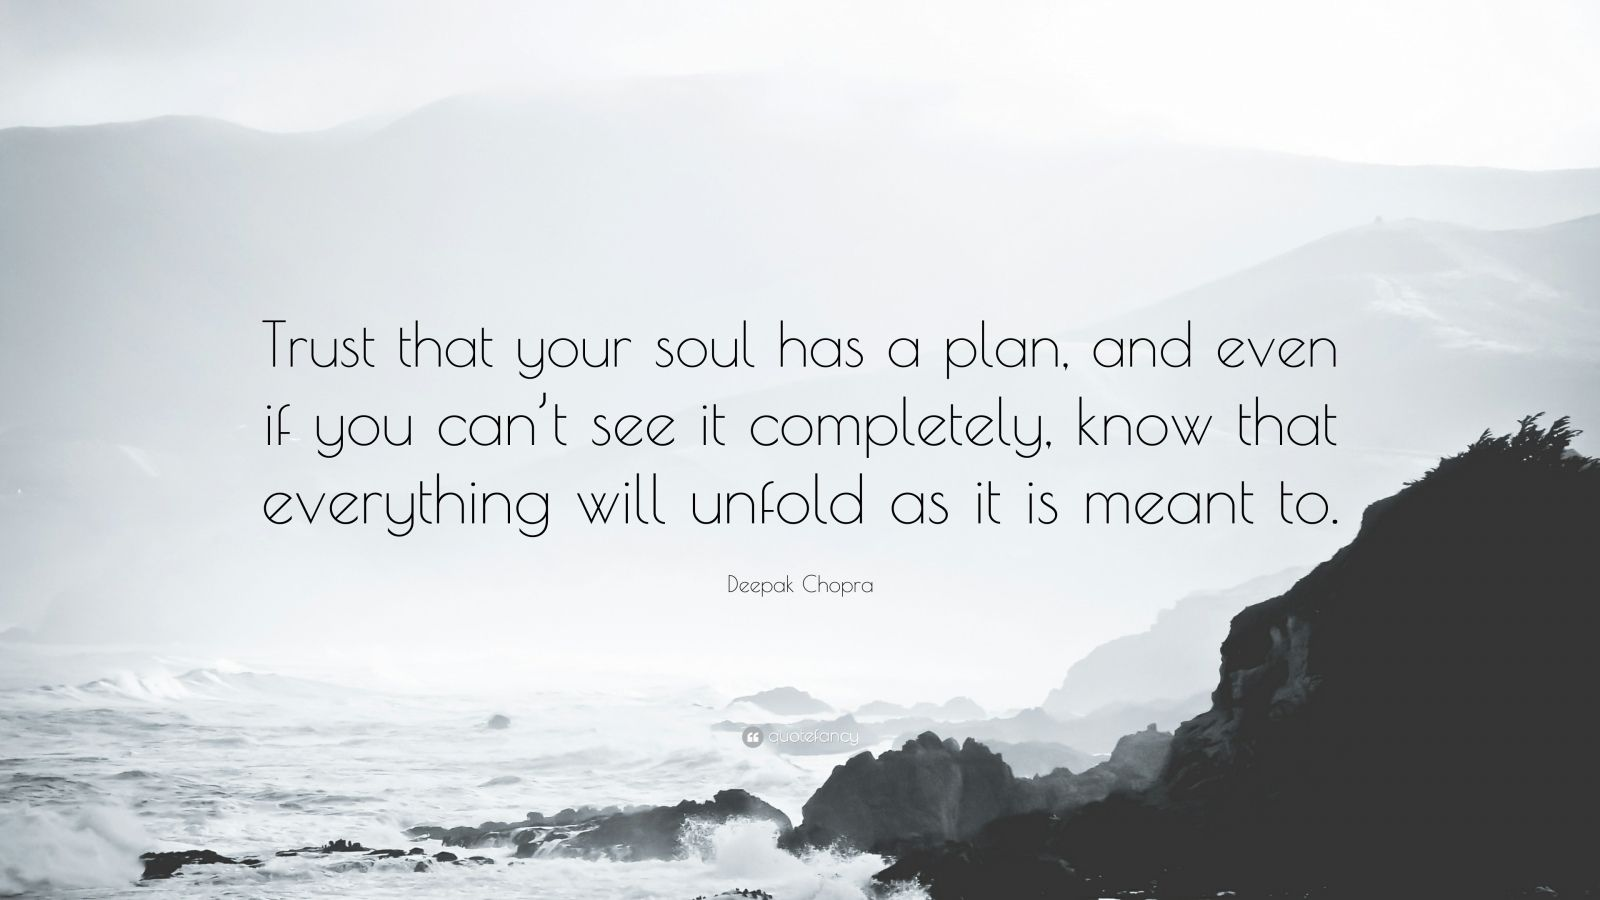 """Deepak Chopra Quote: """"Trust that your soul has a plan, and even if you can't see it completely, know that everything will unfold as it is meant to."""""""